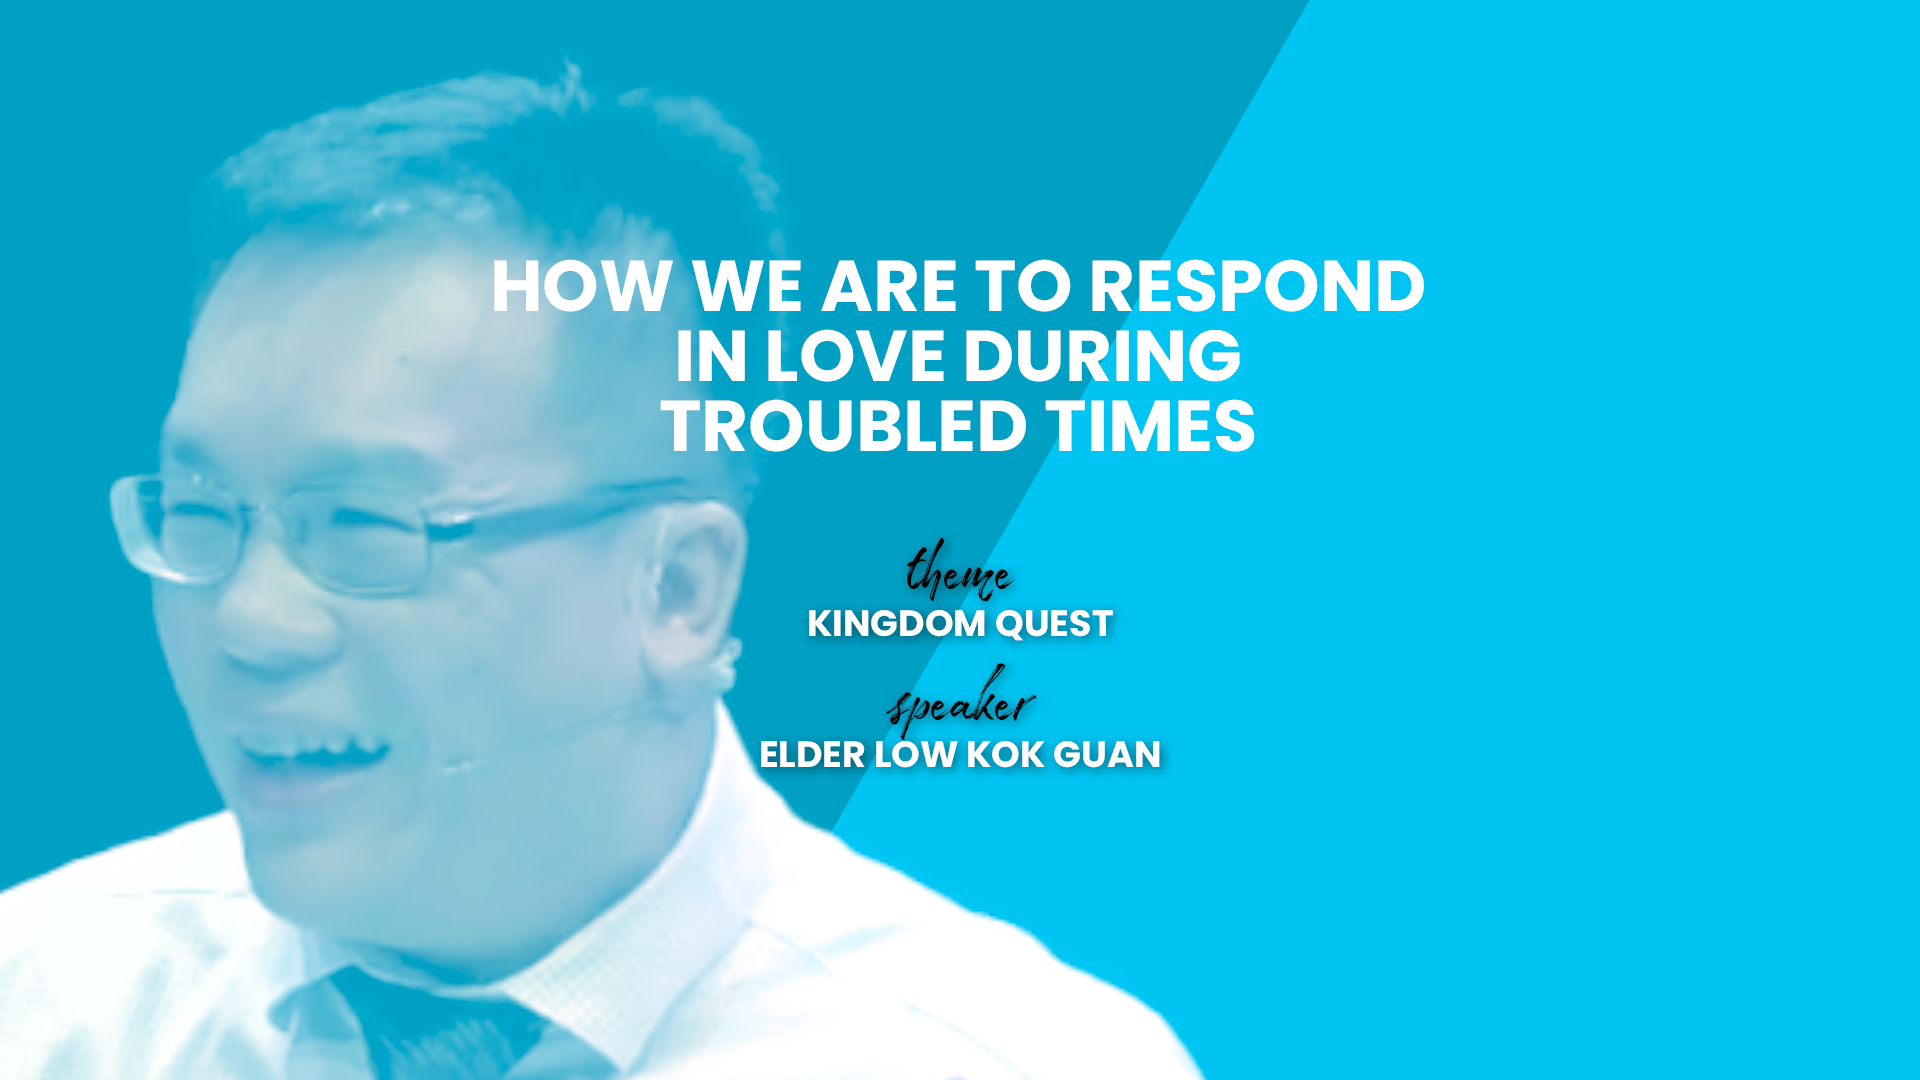 How We Are To Respond In Love During Troubled Times